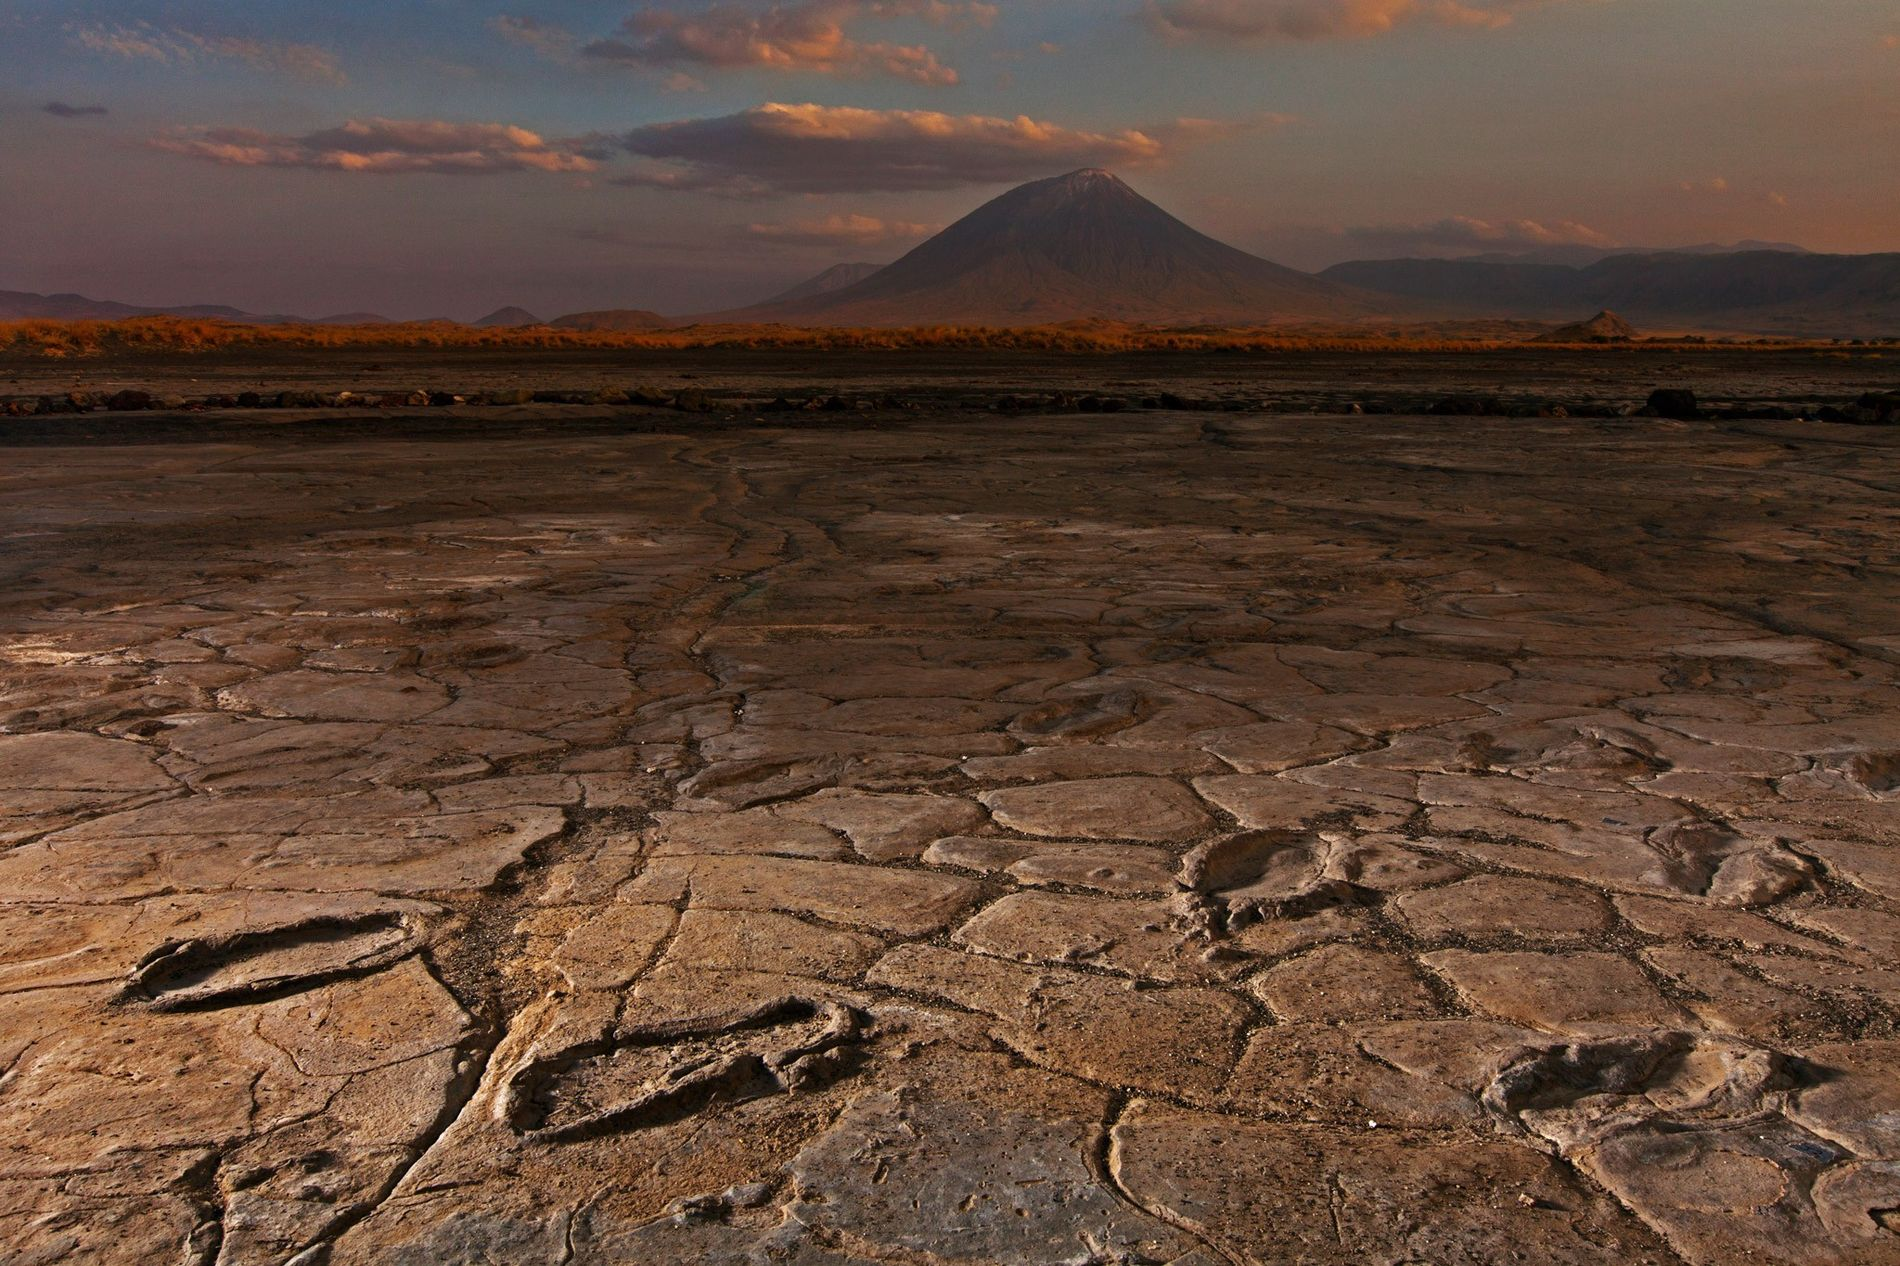 A party of more than a dozen adults and adolescents left footprints in volcanic mud in ...